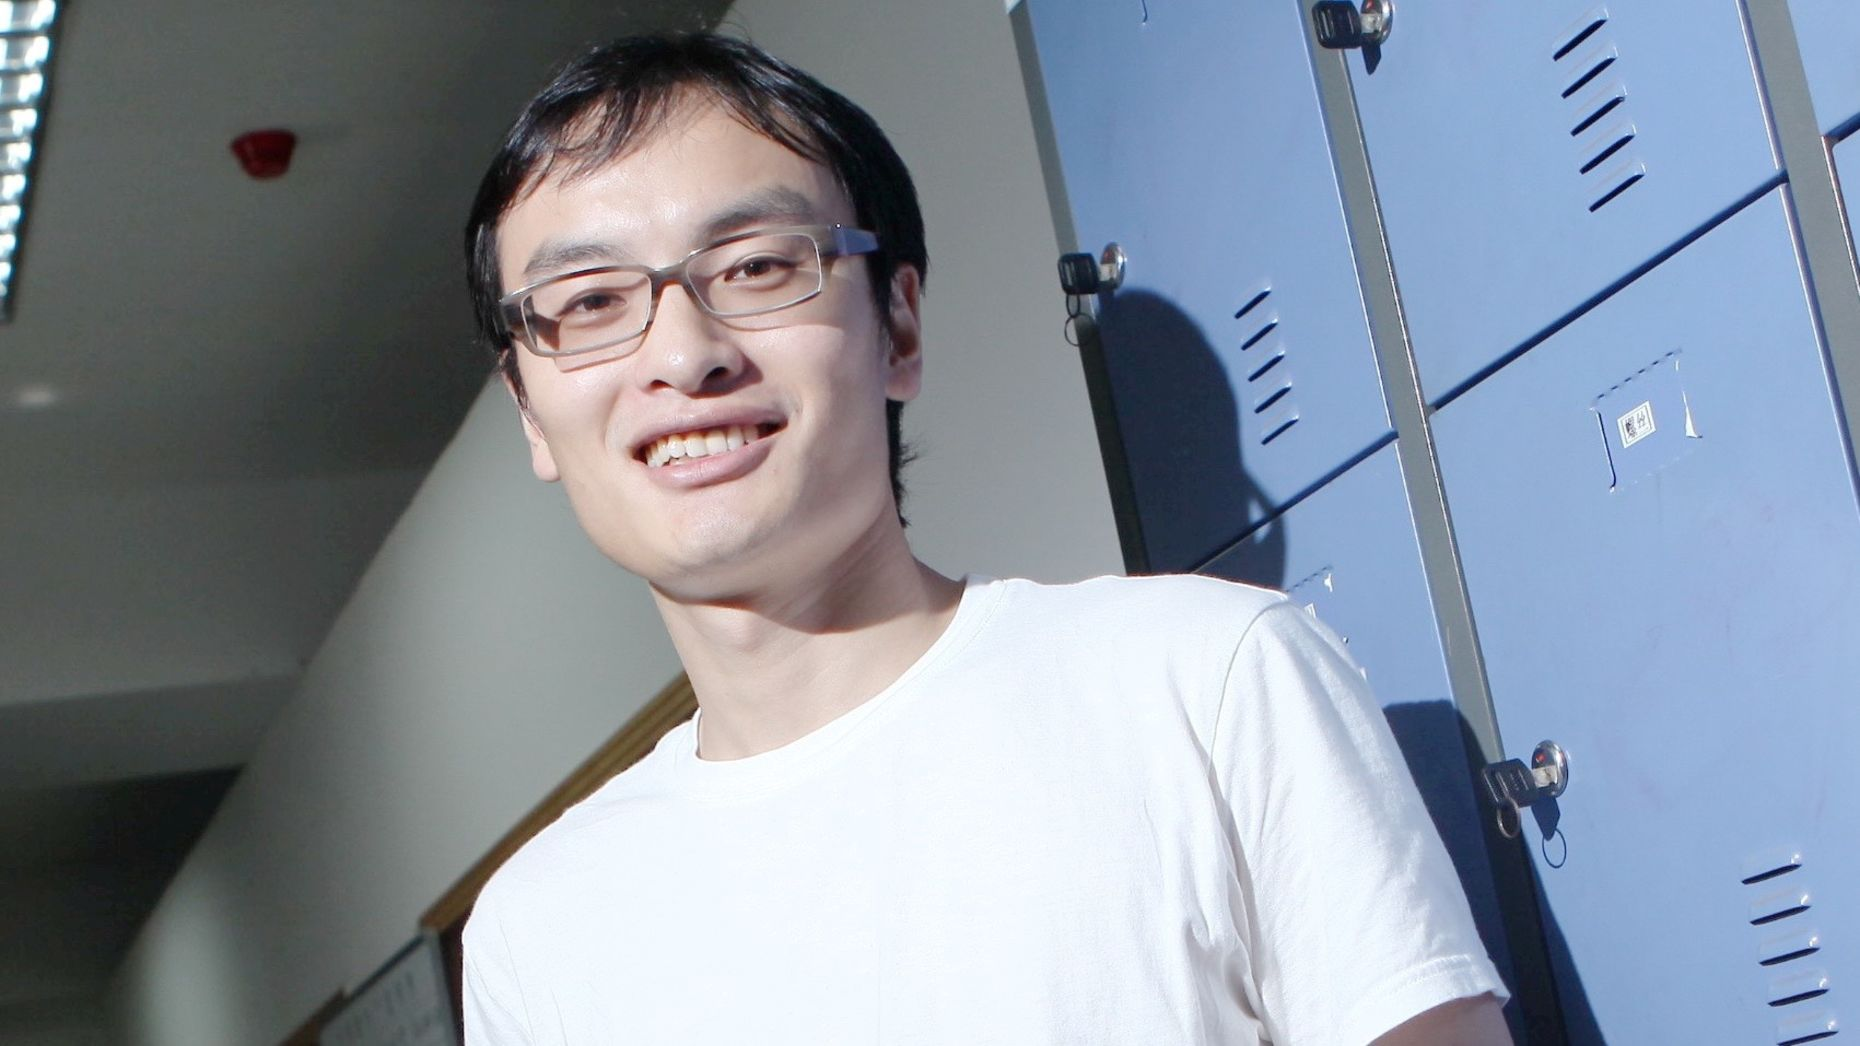 Frank Wang in 2010. Photo by AP.